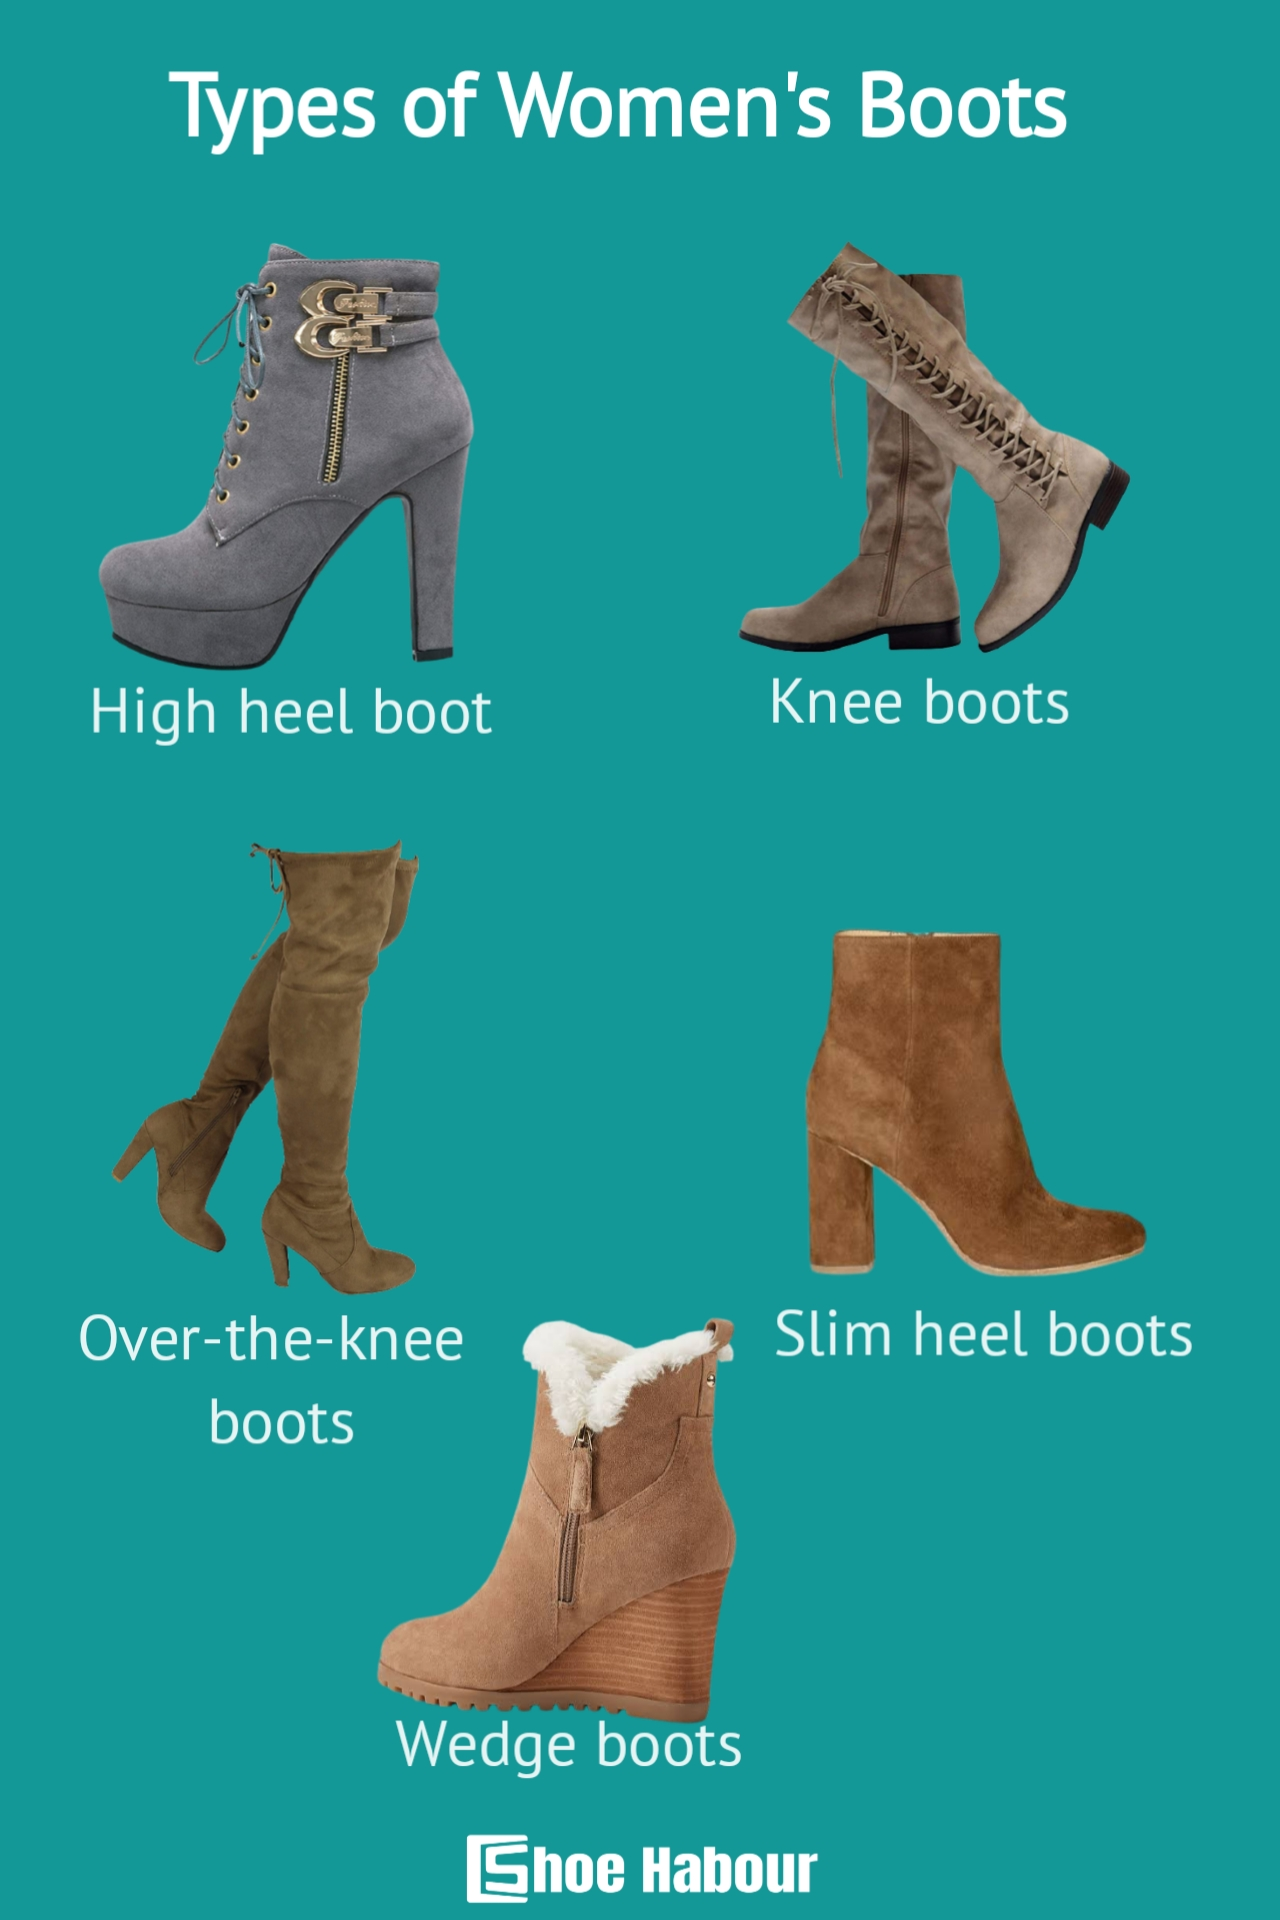 Types of women's boots